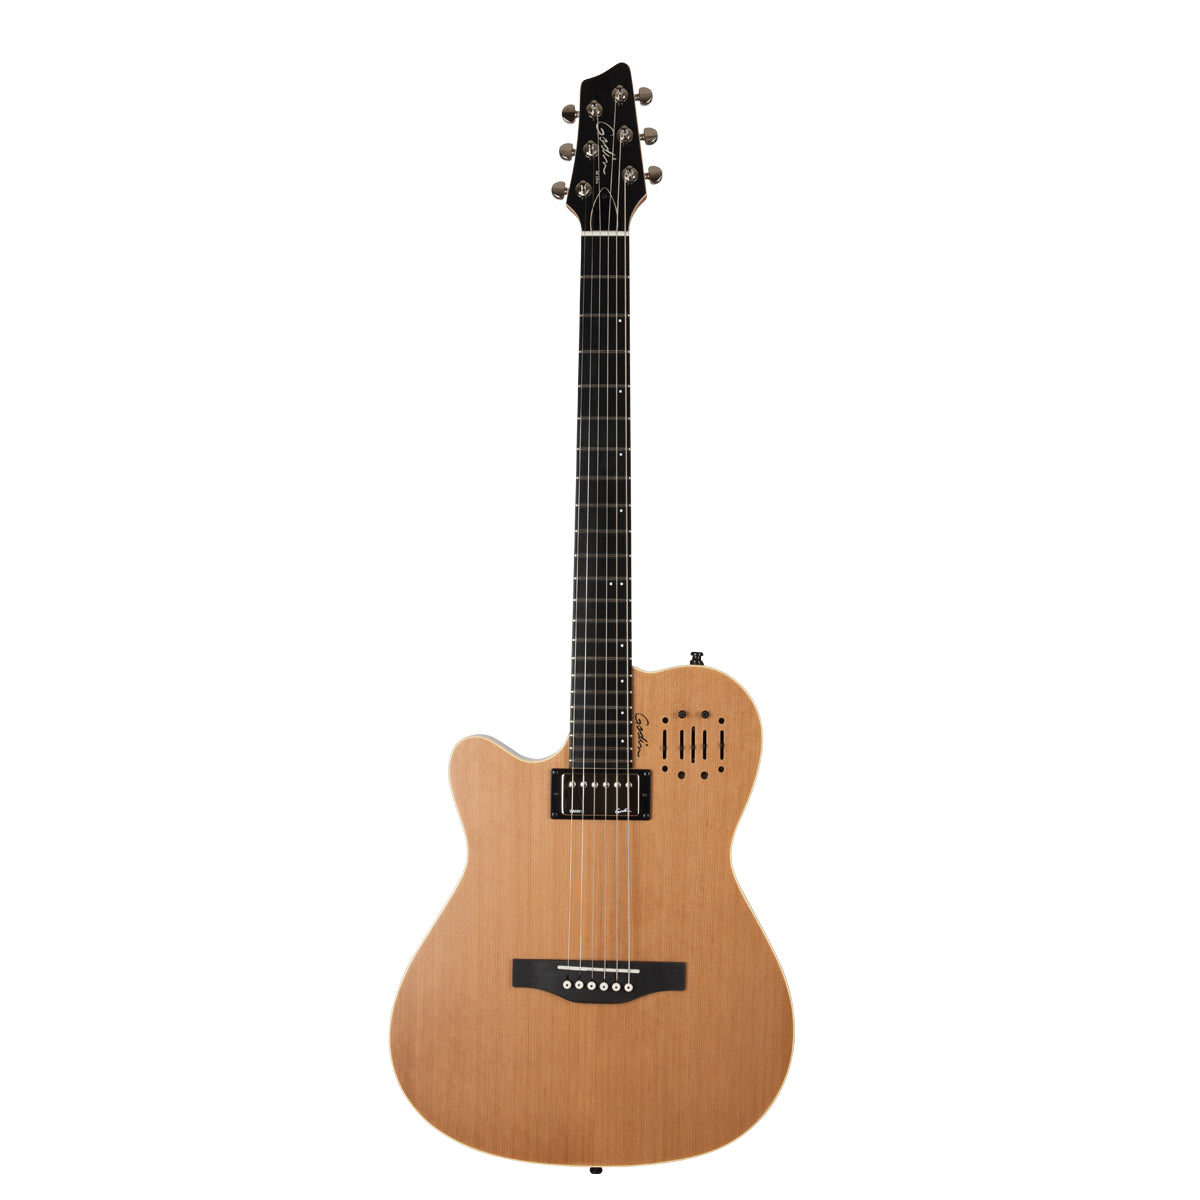 Godin A6 Ultra Natural SG Left Handed natural Semi Hollow Acoustic Electric Guitar